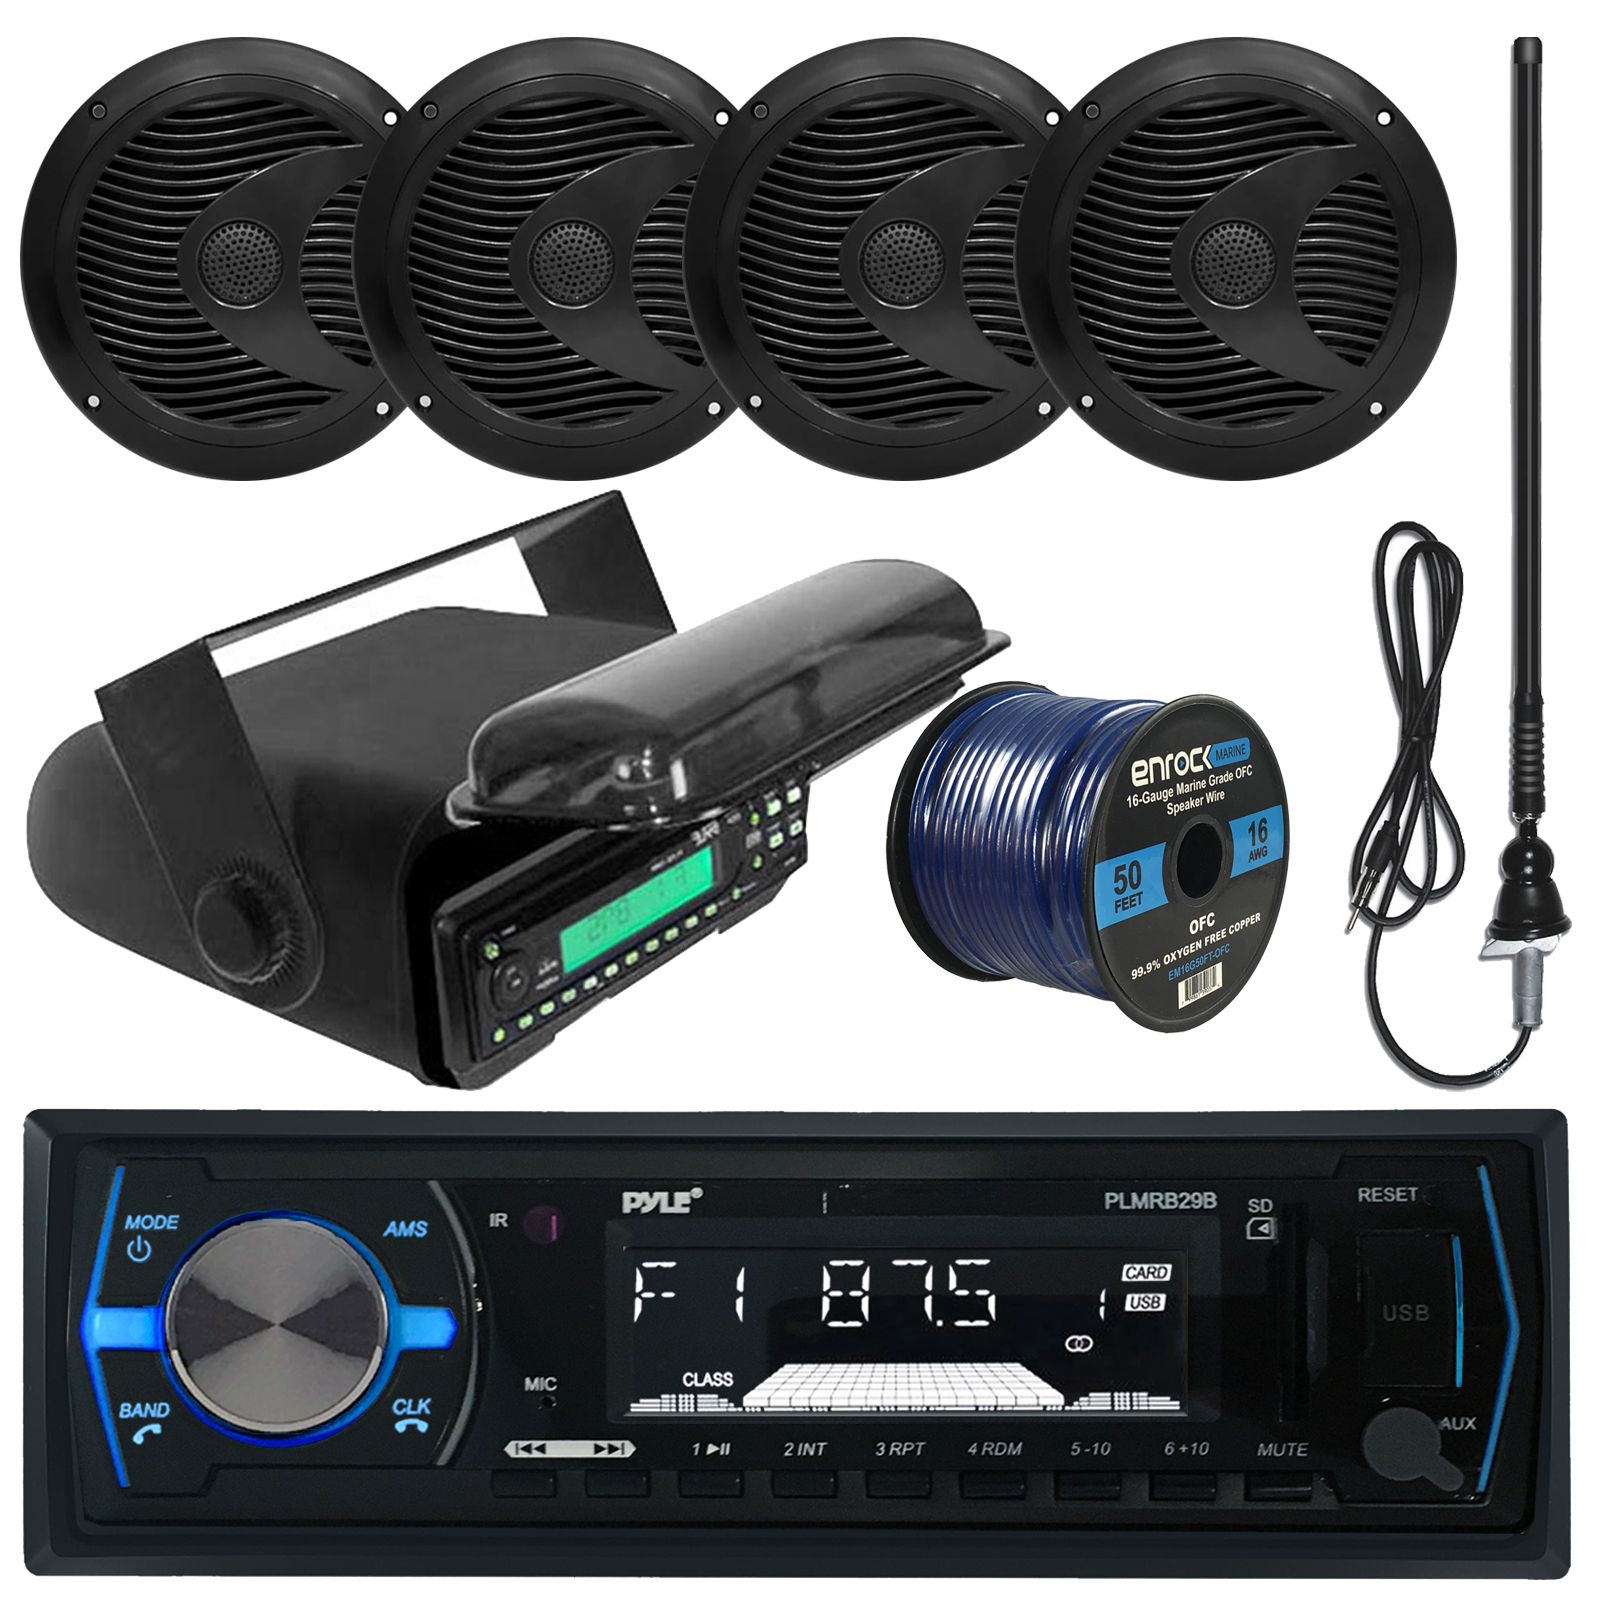 hight resolution of pyle plmrb29b mp3 usb sd bluetooth in dash radio receiver bundle combo with black marine stereo housing 4x 6 1 2 dual cone waterproof audio speakers